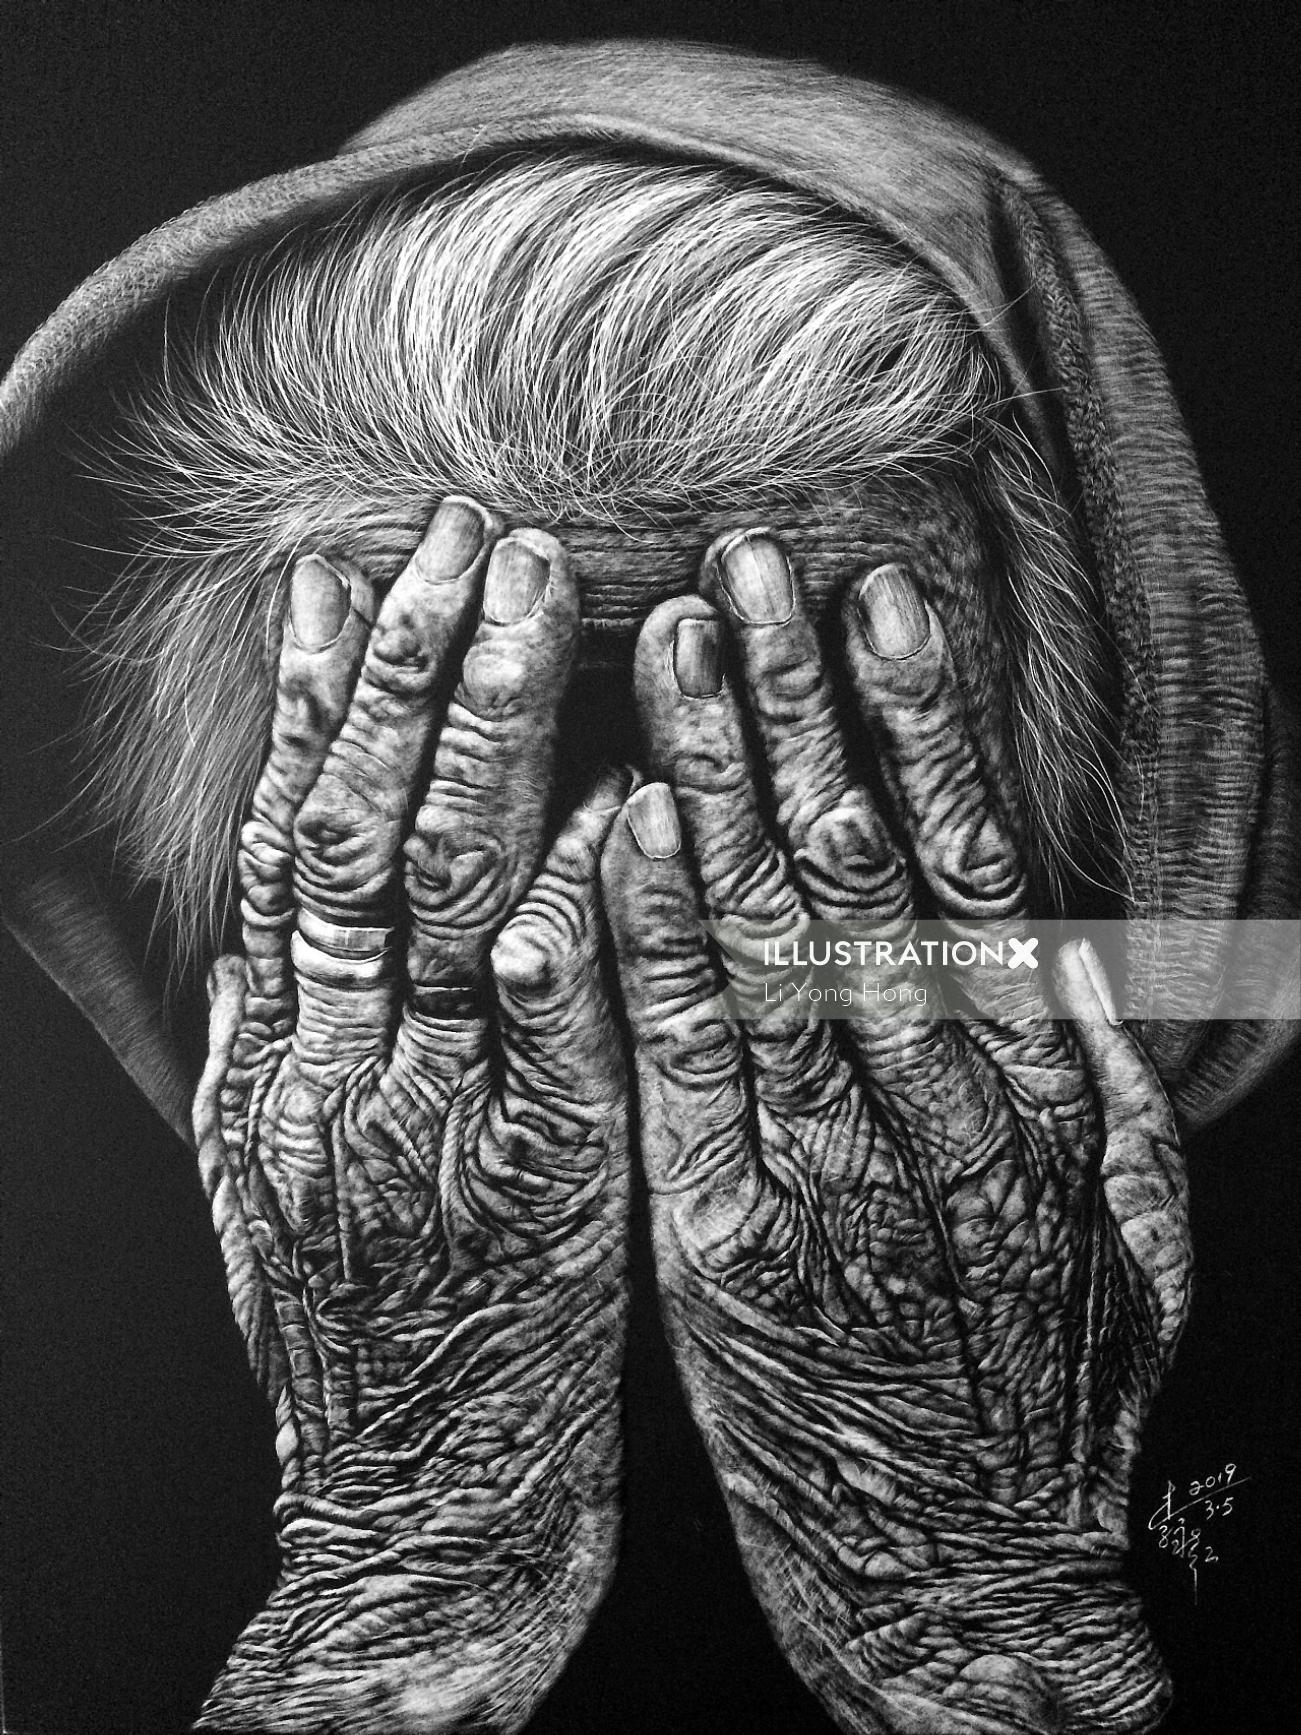 Old hands black and white illustration